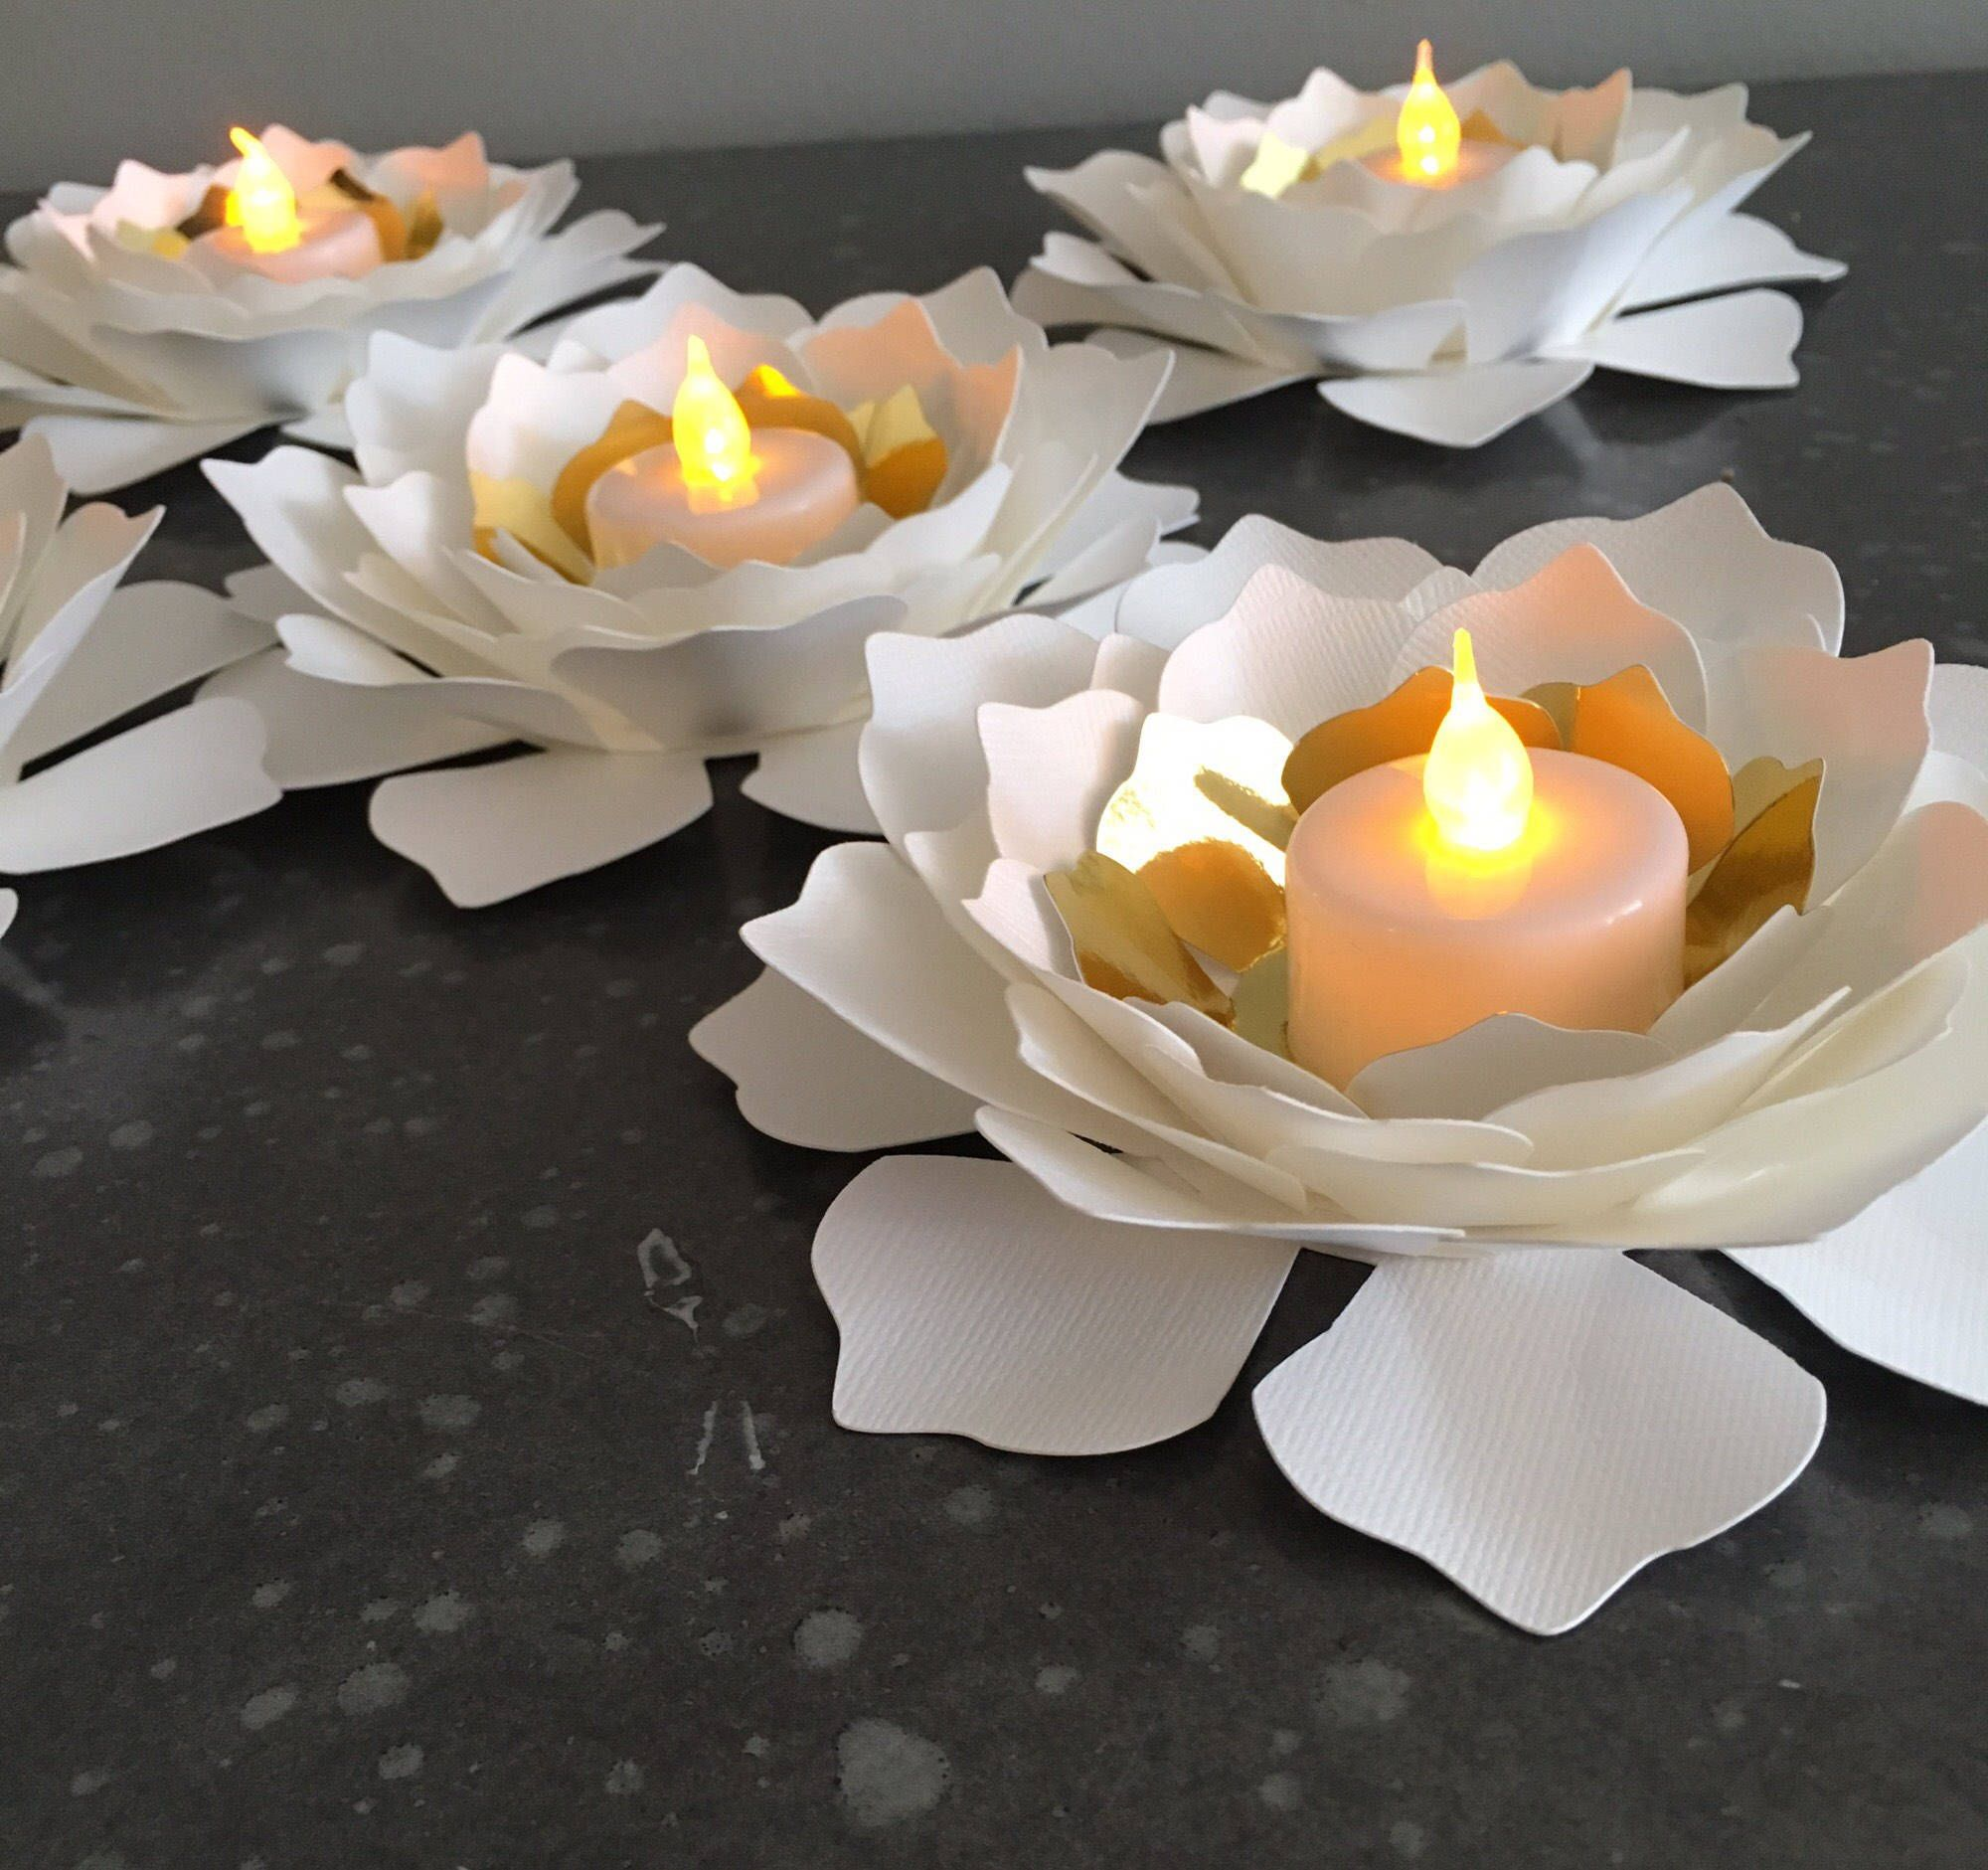 Awe Inspiring 5 Flower Led Candle Holder Wedding Decorations Centerpiece Home Interior And Landscaping Analalmasignezvosmurscom